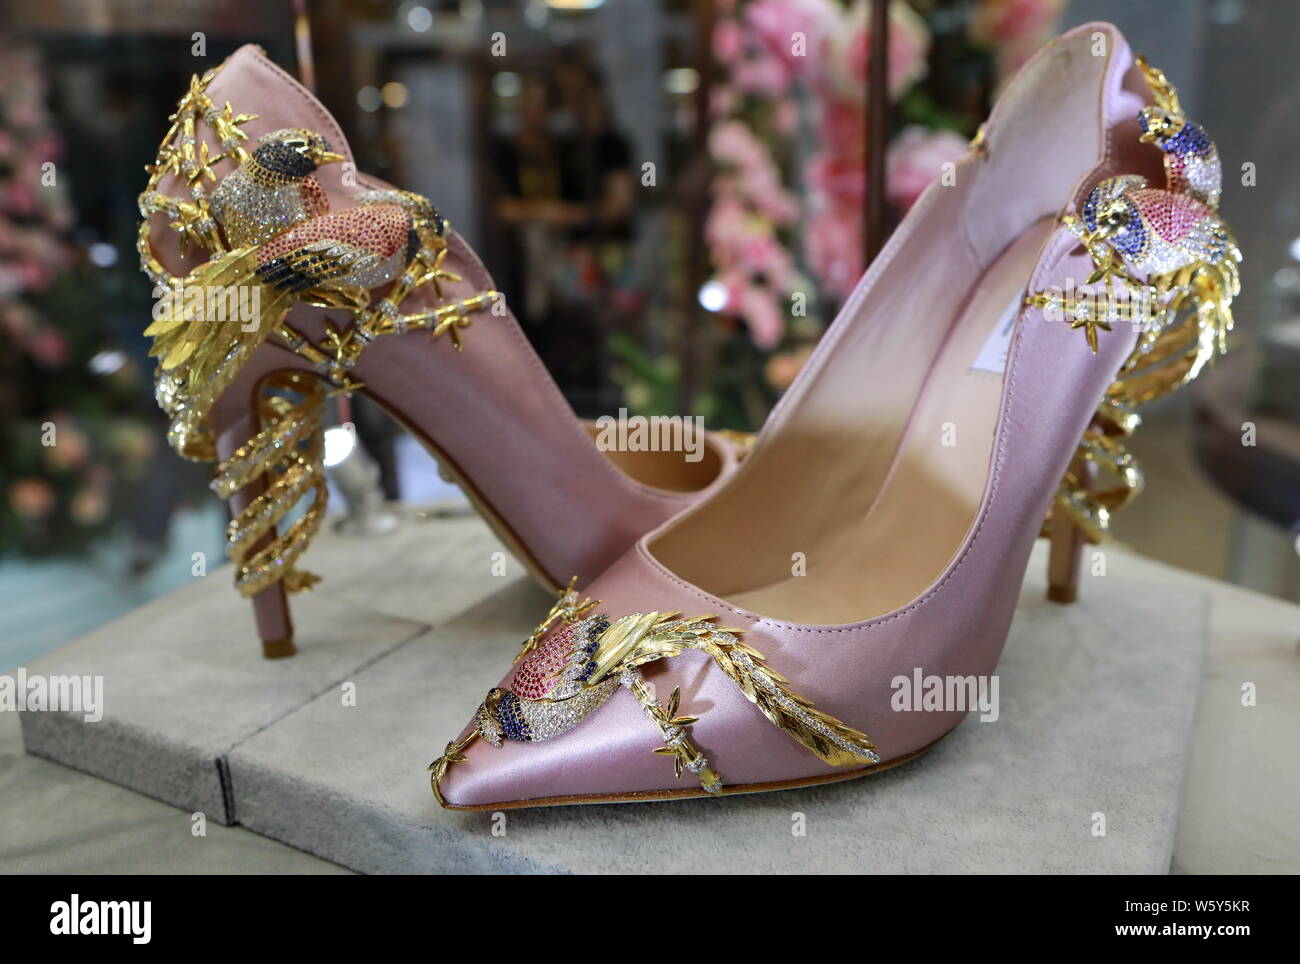 A pair of luxury high heel shoes is on